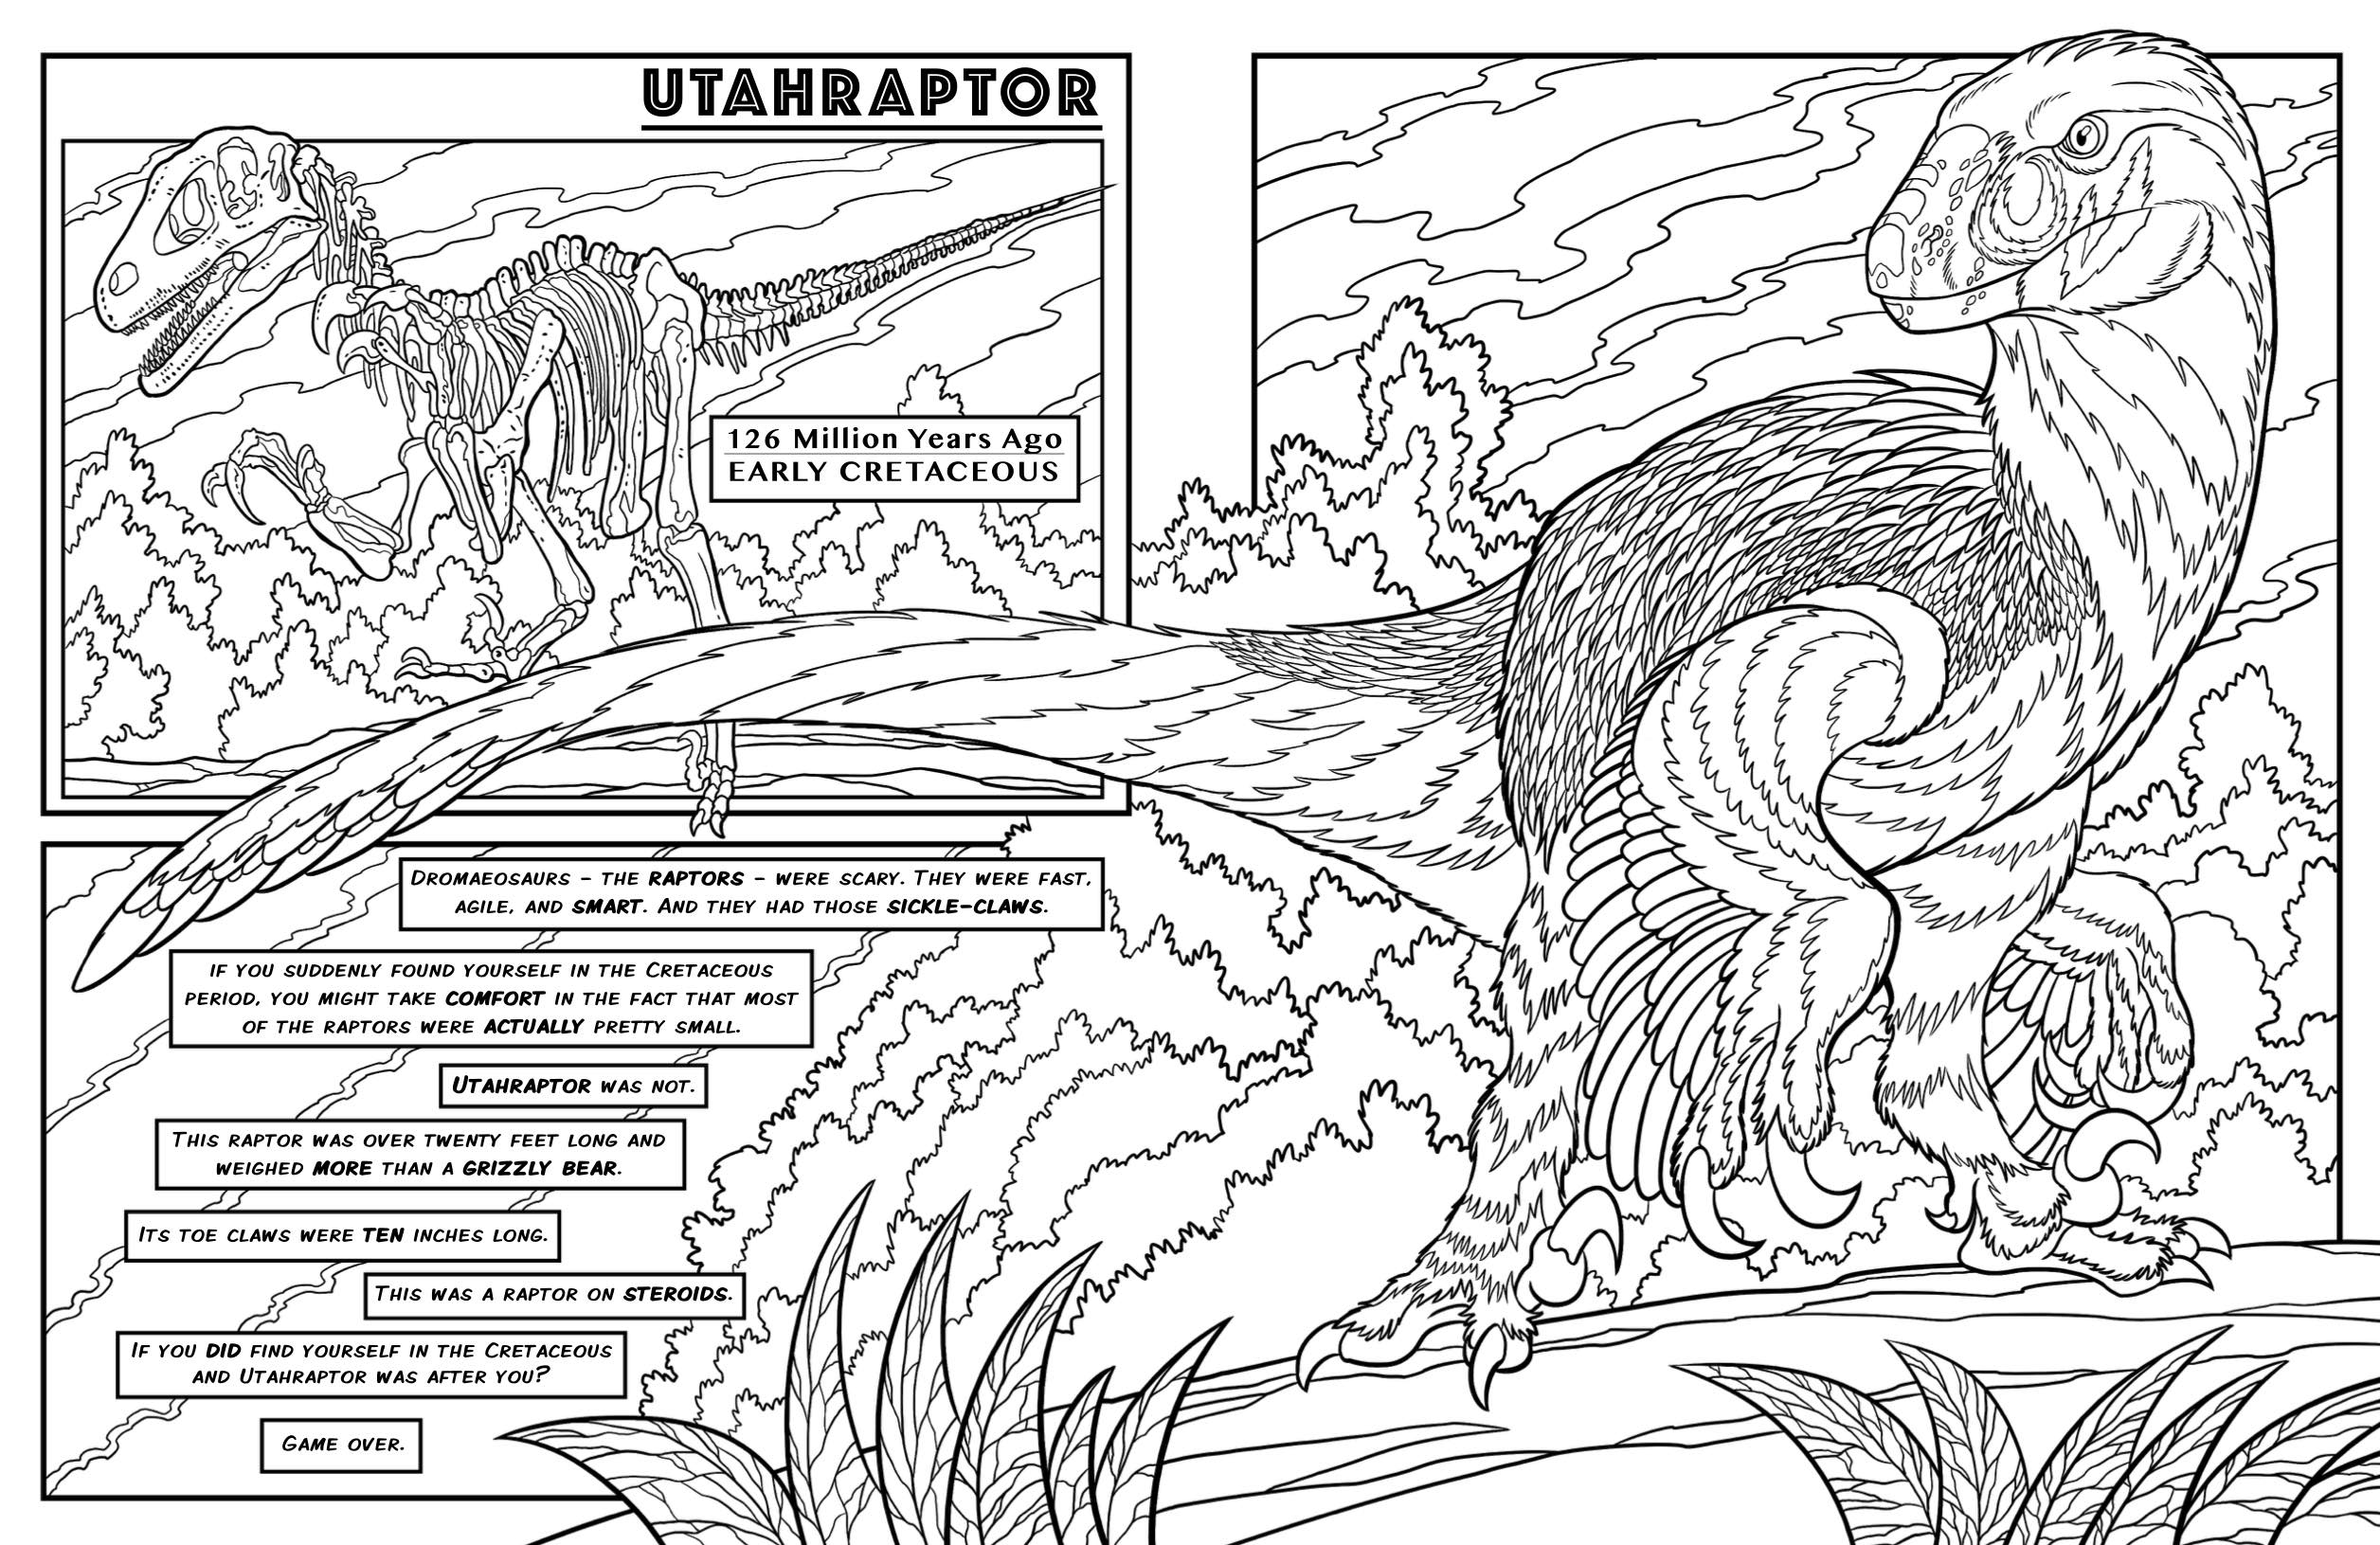 dinosaurus utah raptor coloring pages - photo#26